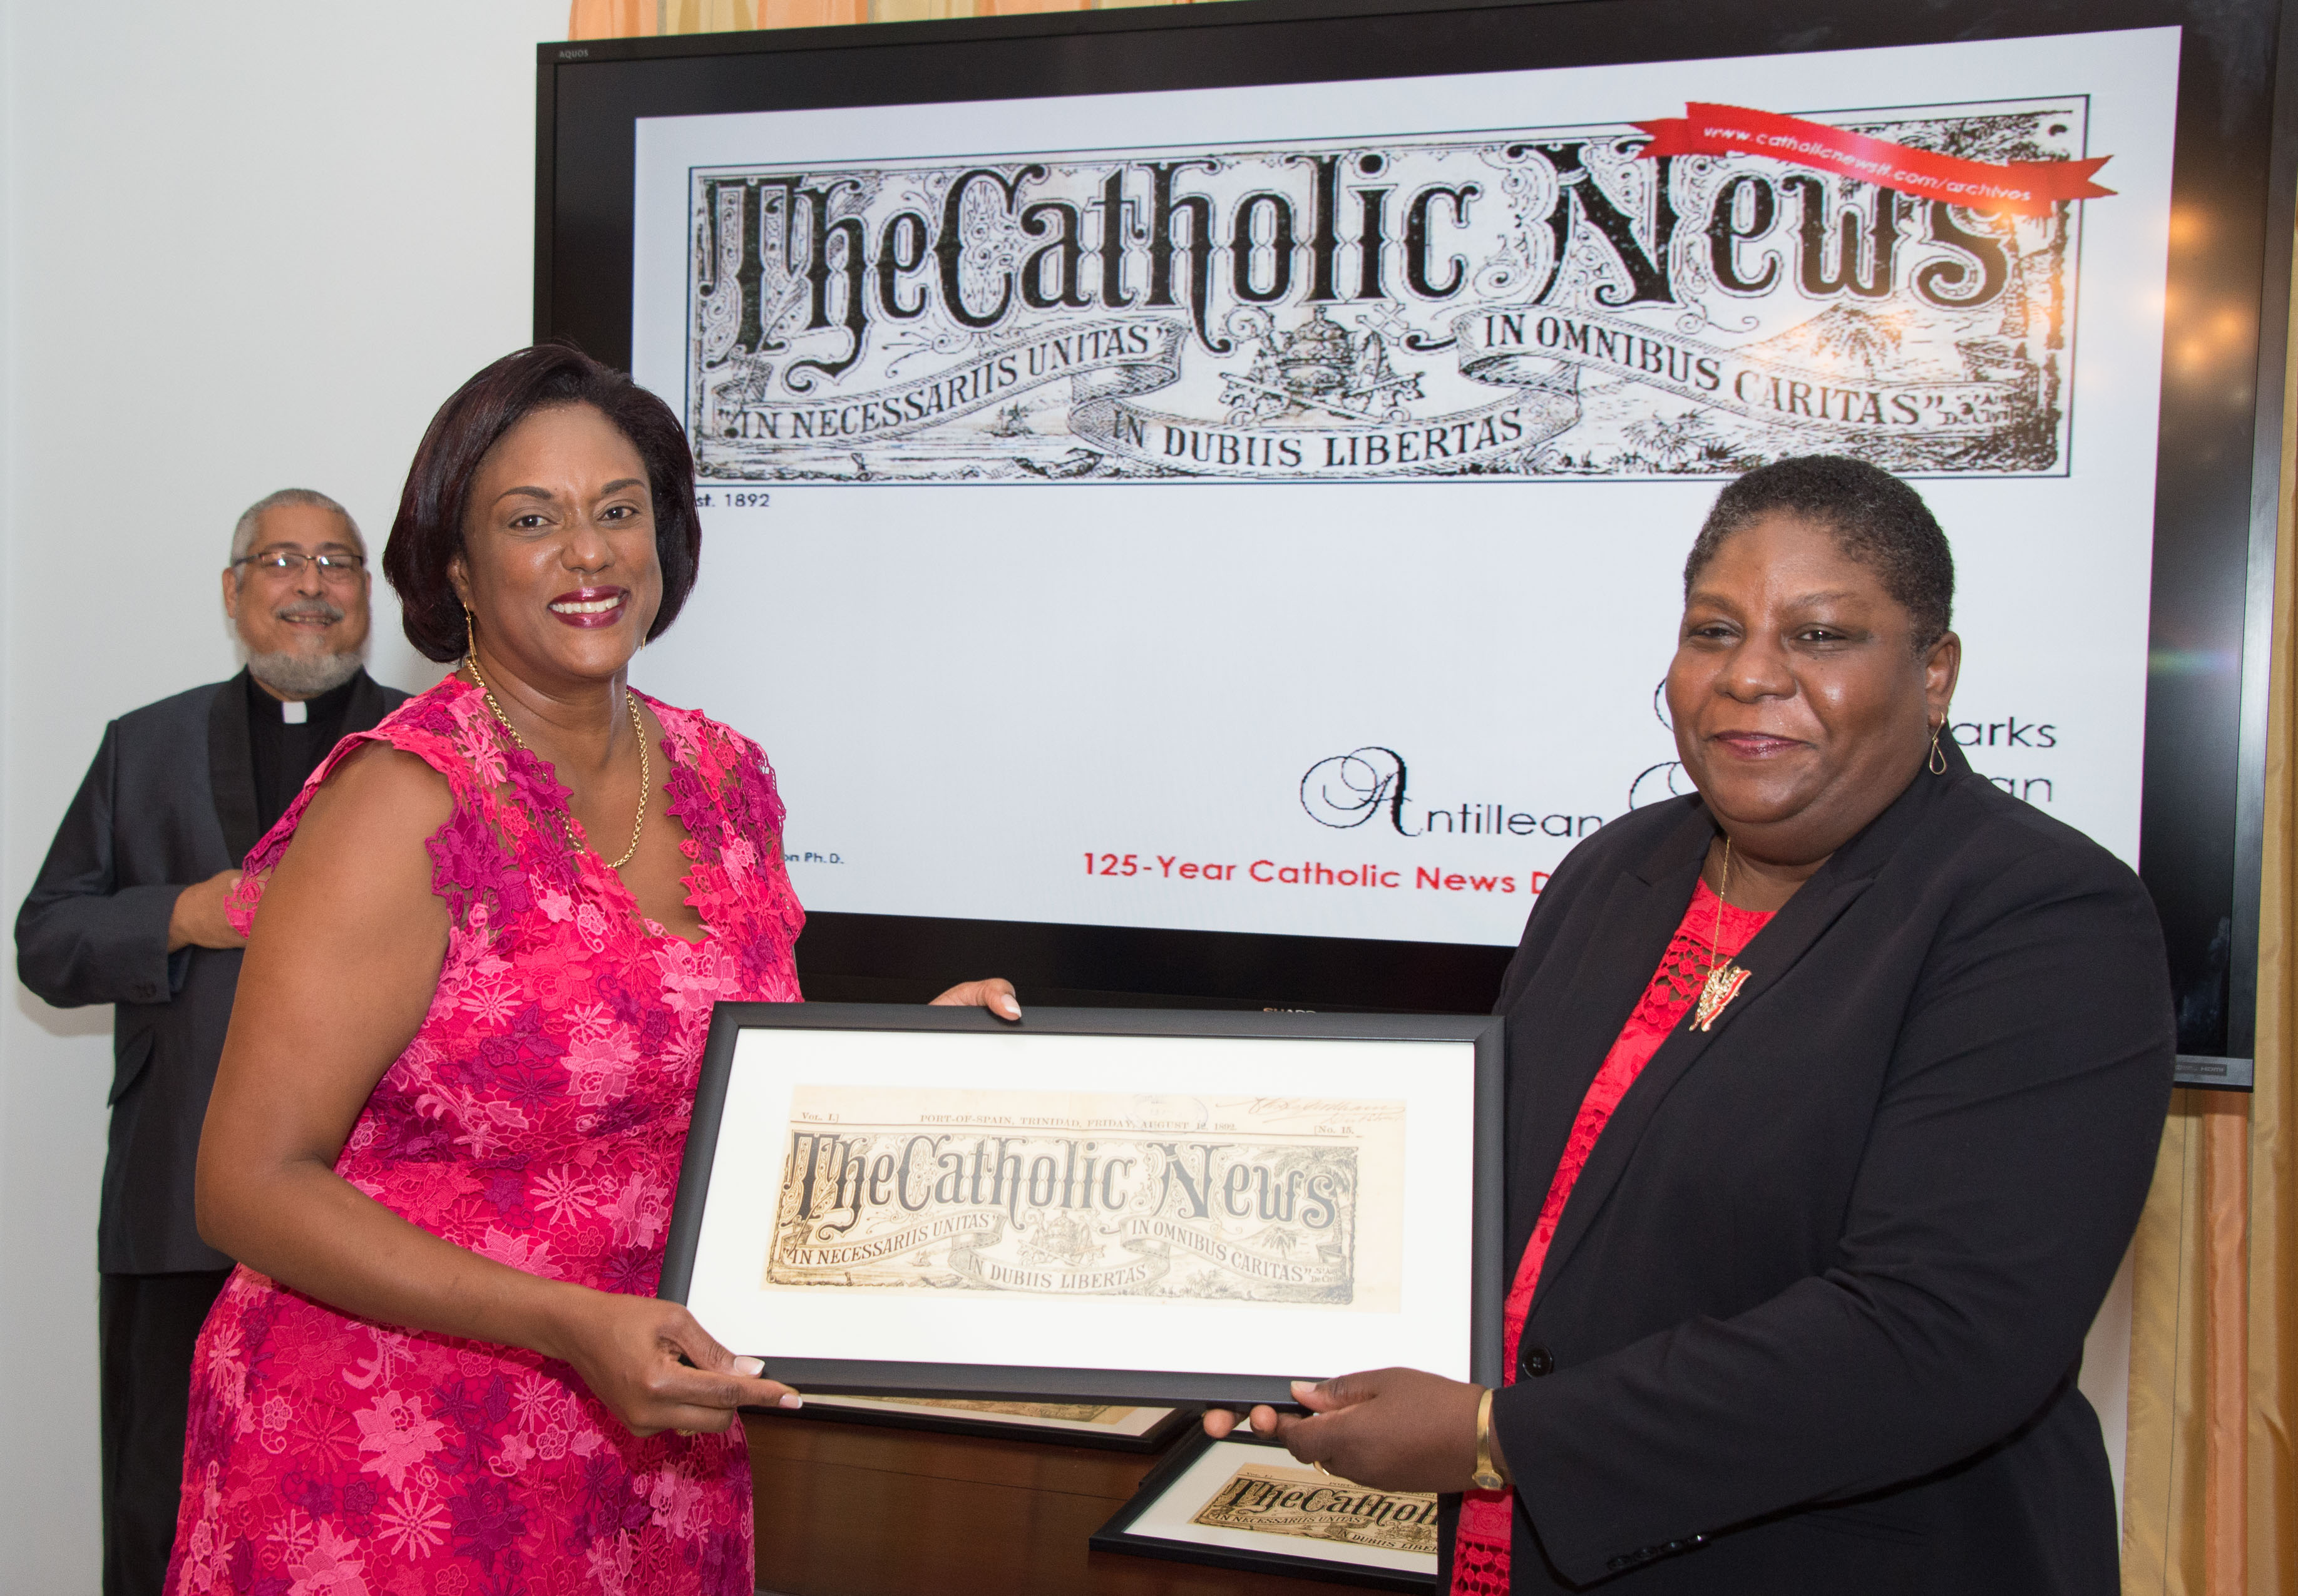 Catholic News Digital Archive launched